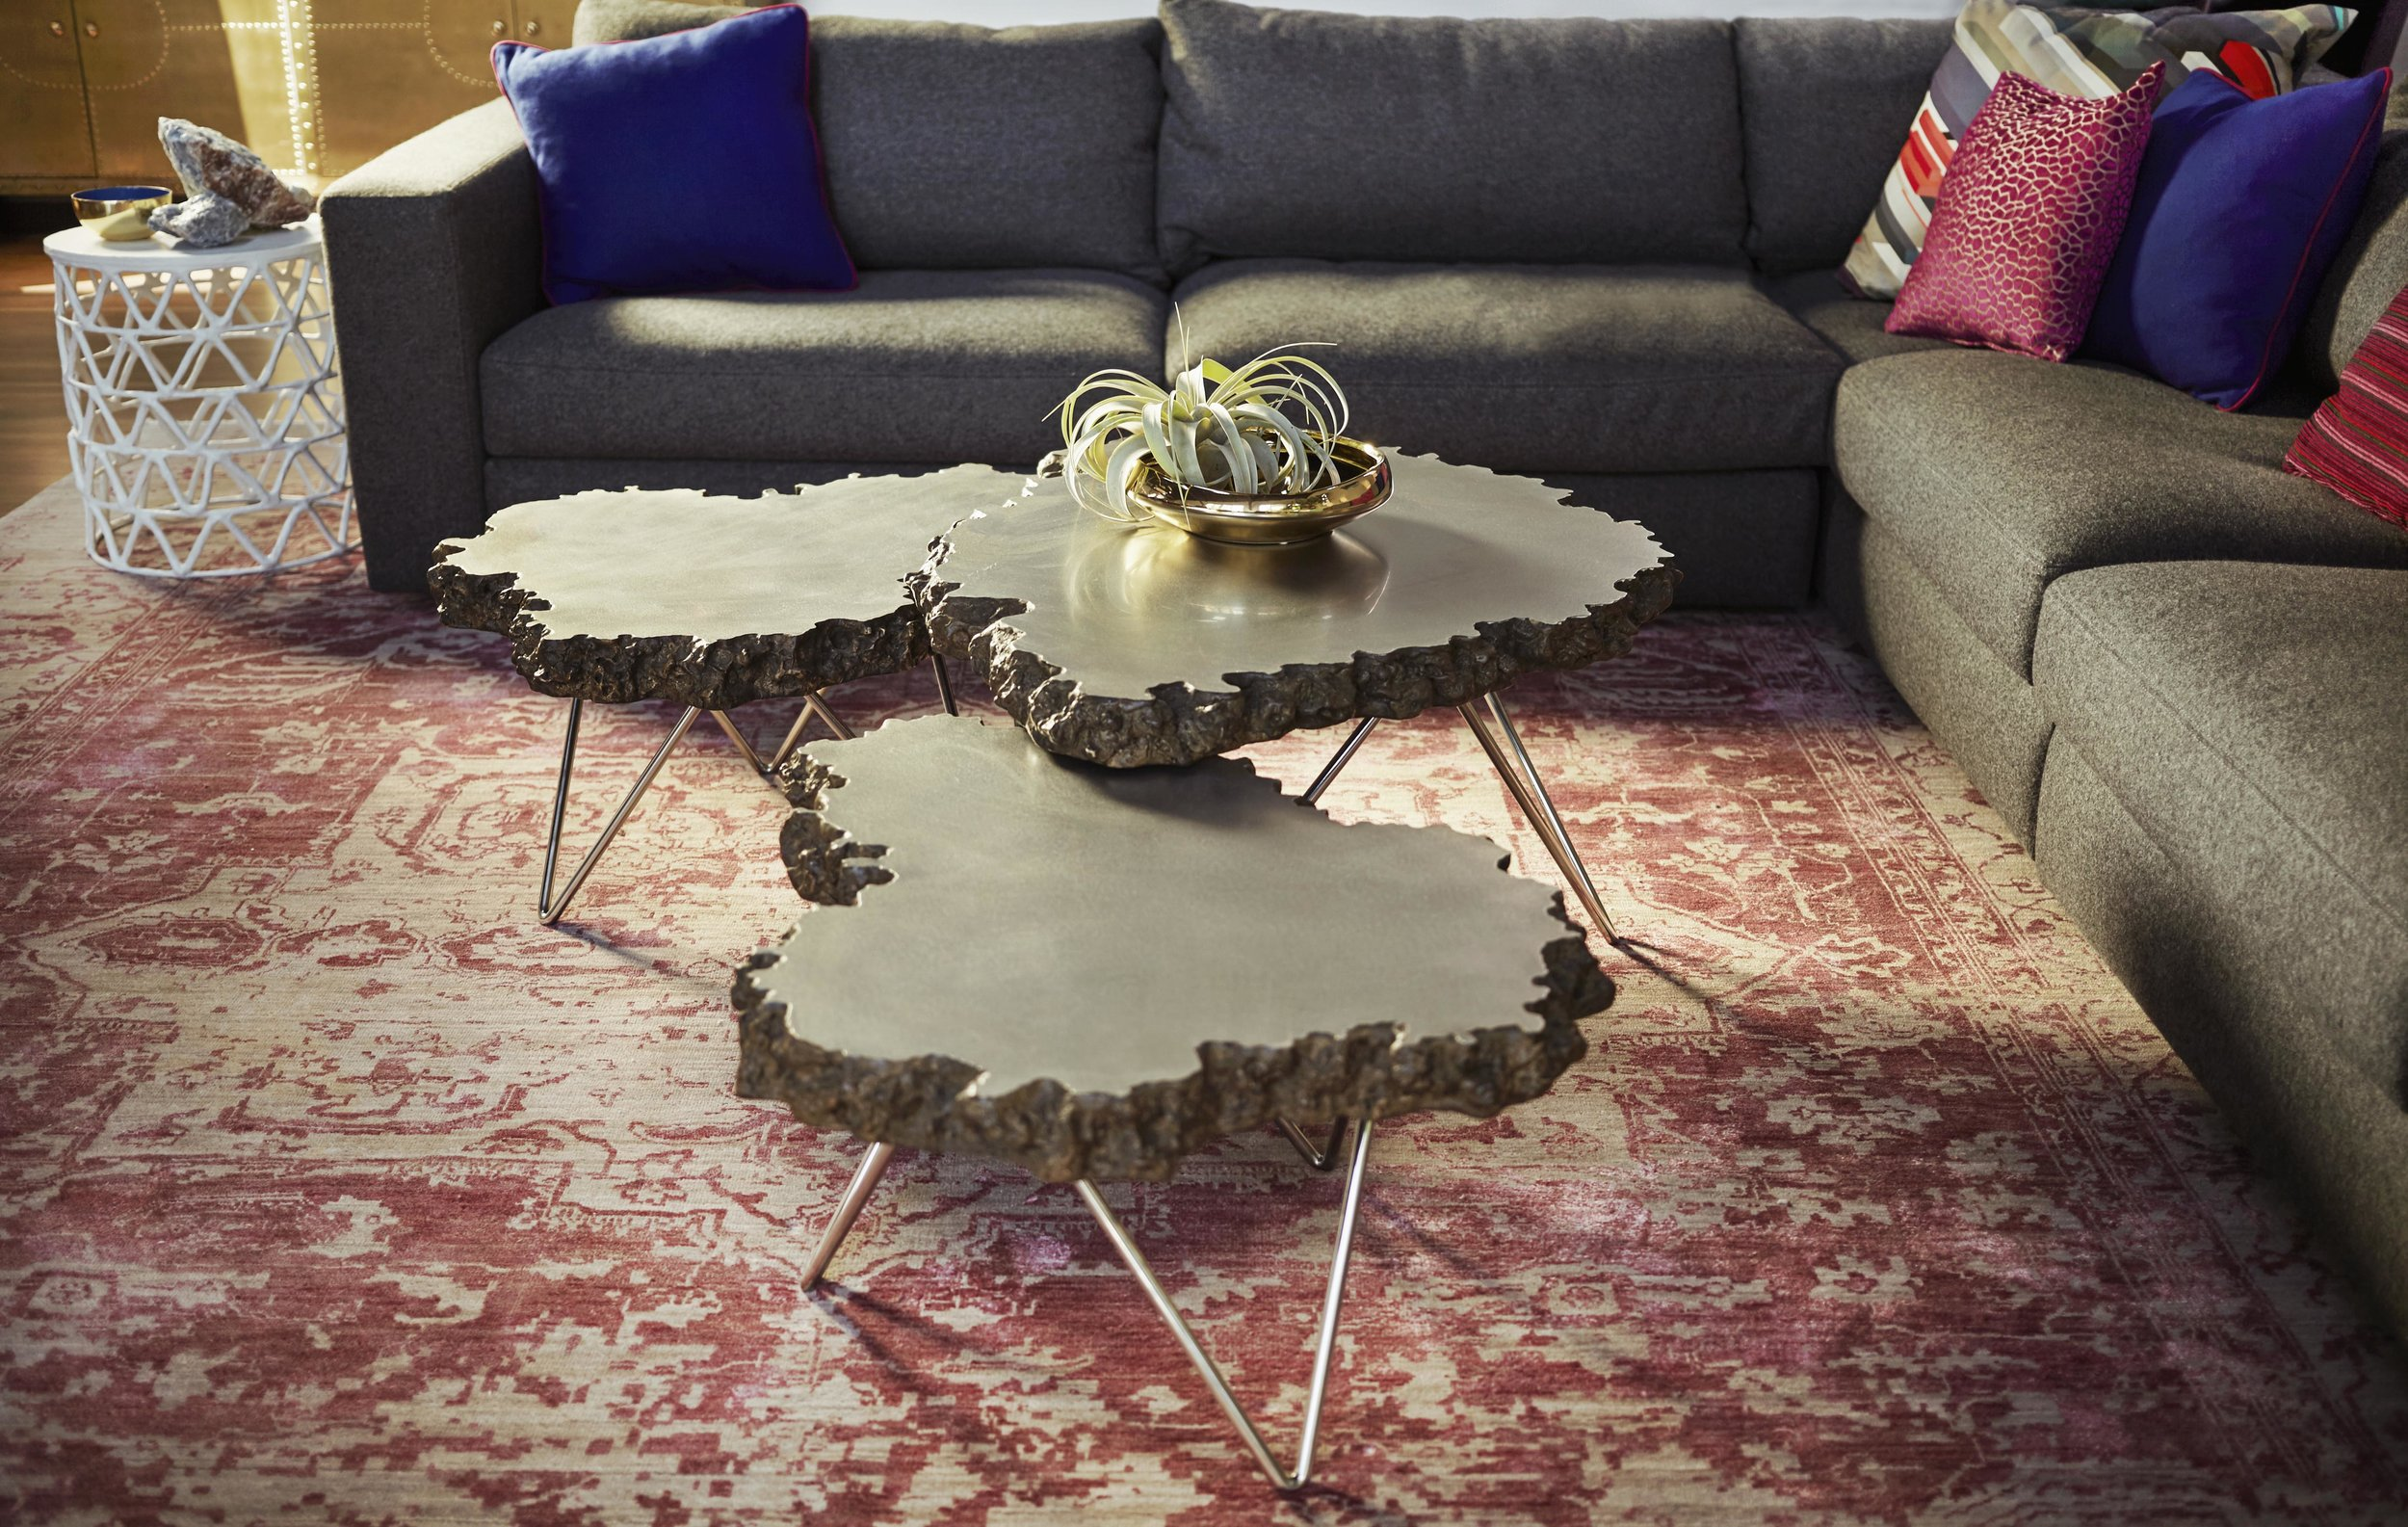 143Albion Coffee table.jpg